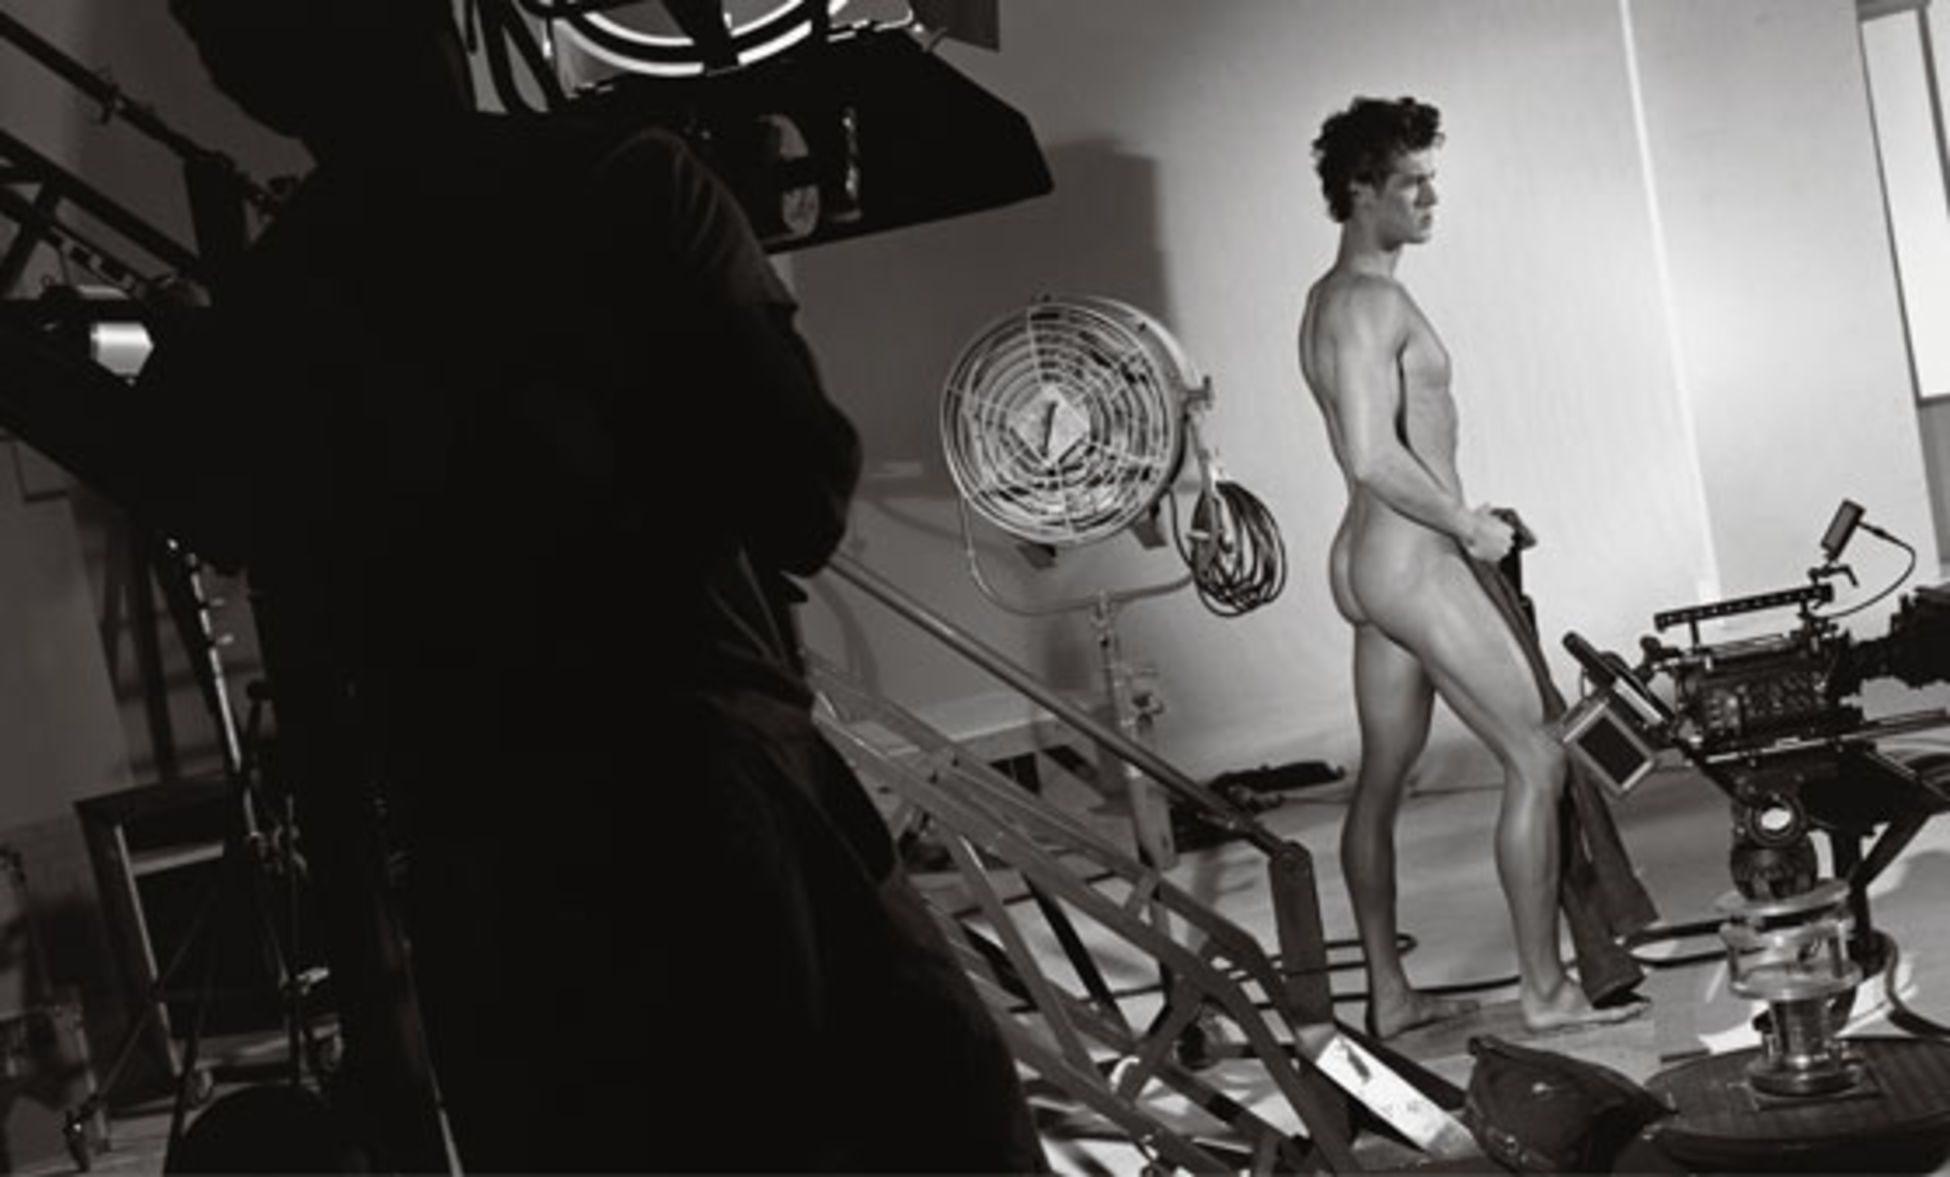 See jamie dornan's very naked abercrombie and fitch ad on malin akerman's instagram